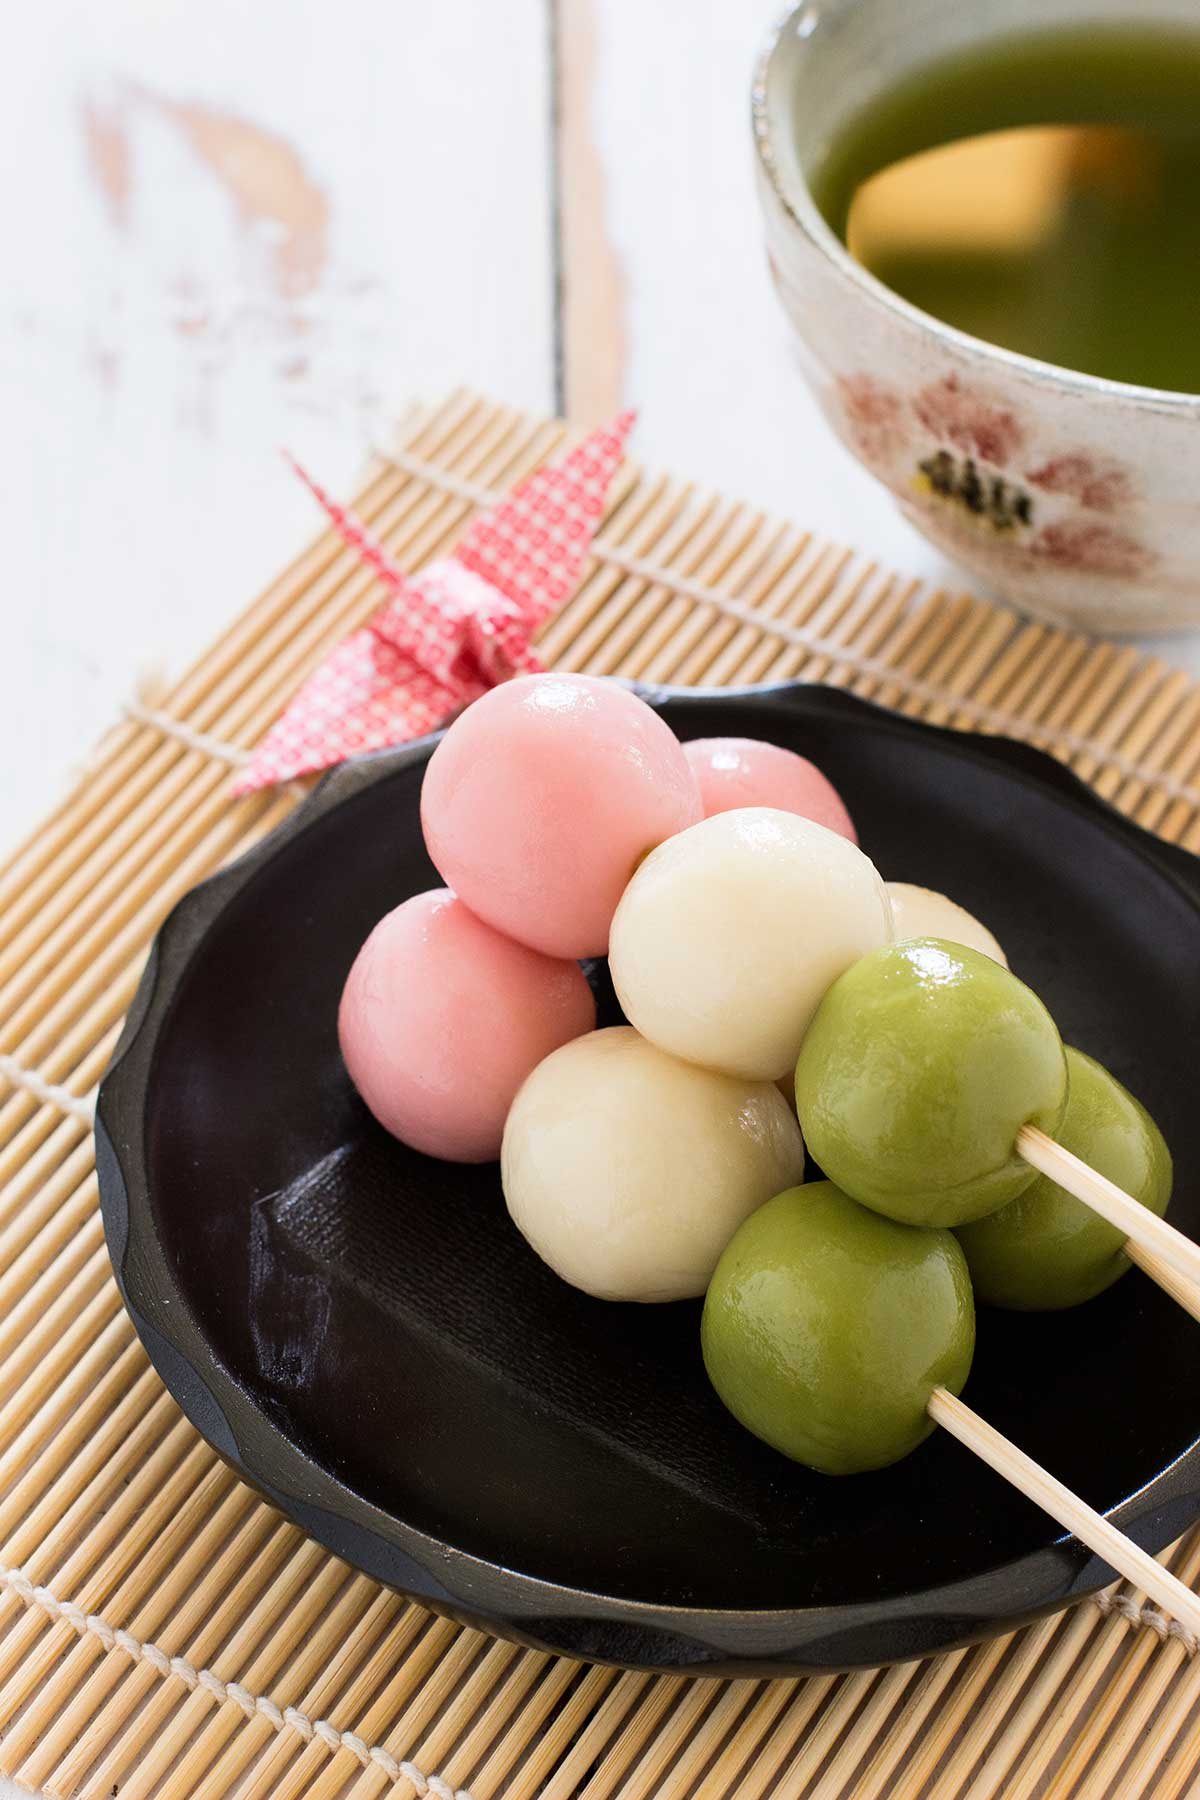 the 3rd of march marks the girls day festival in japan known as hinamatsuri so to celebrate this festival i made three colour dango or sanshoku